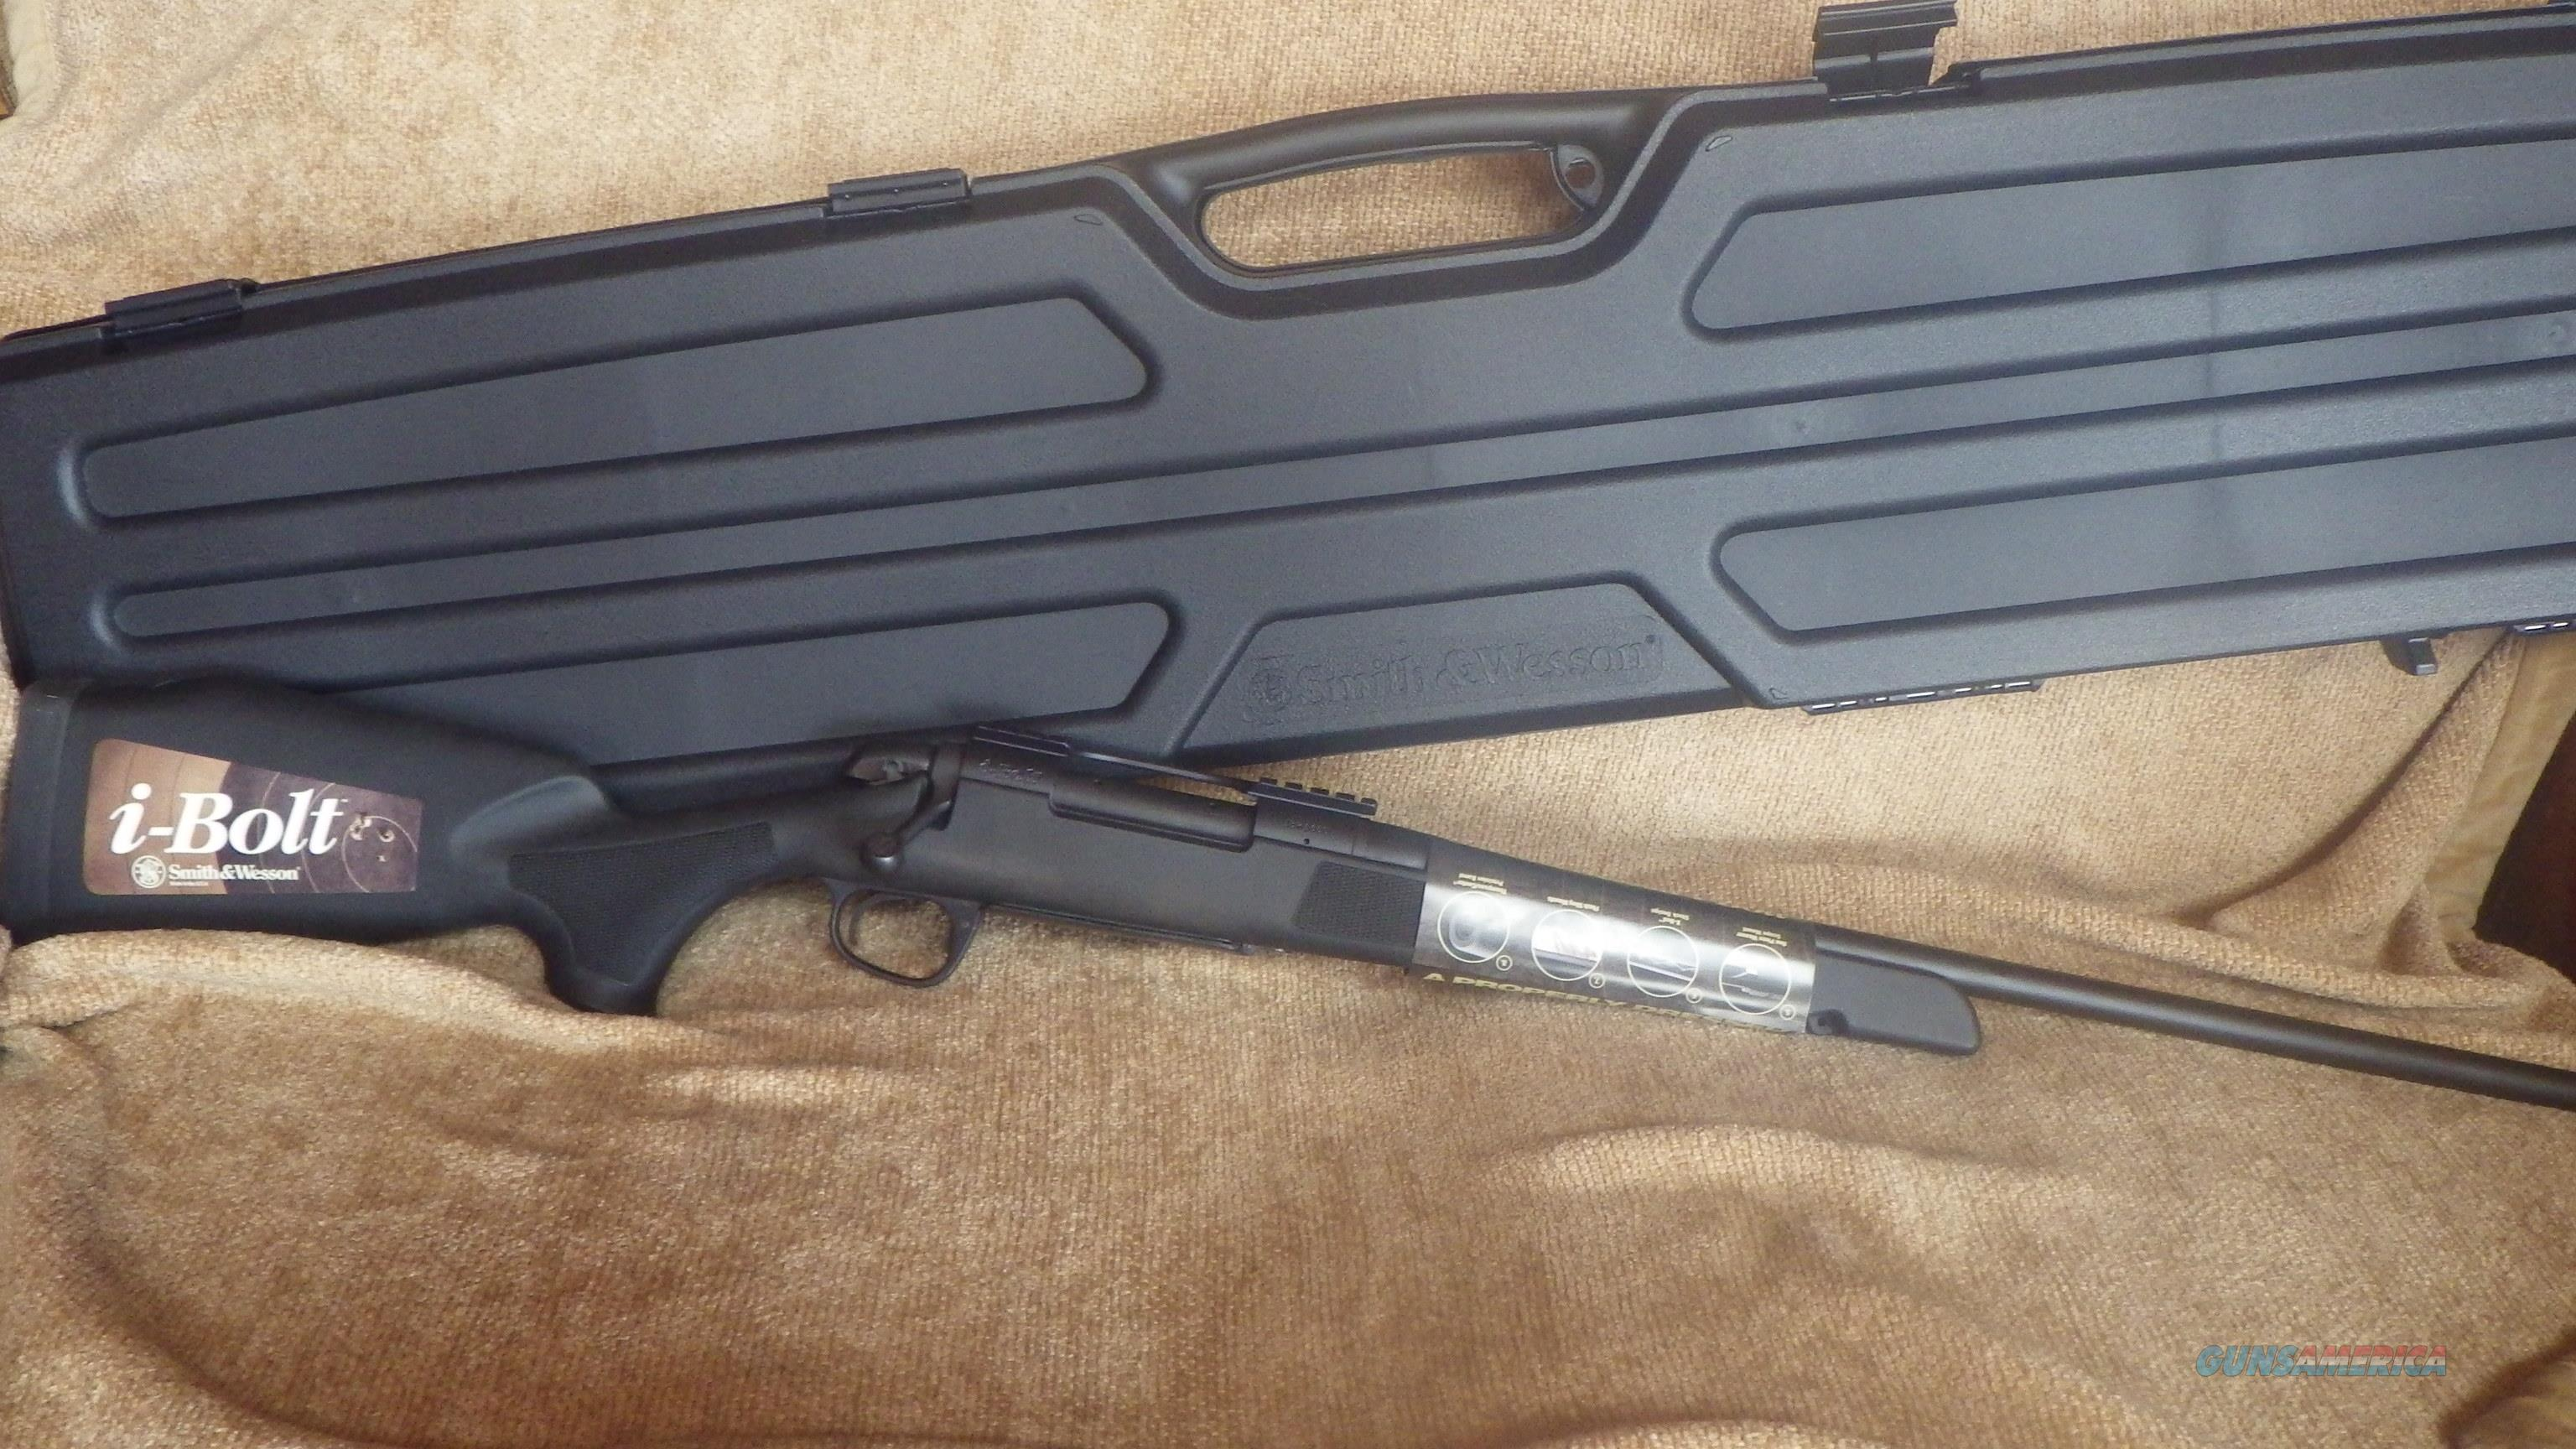 SMITH & WESSON I-BOLT RIFLE 30-06CAL (NIB) with Hard Case   Guns > Rifles > Smith & Wesson Rifles > I-Bolt